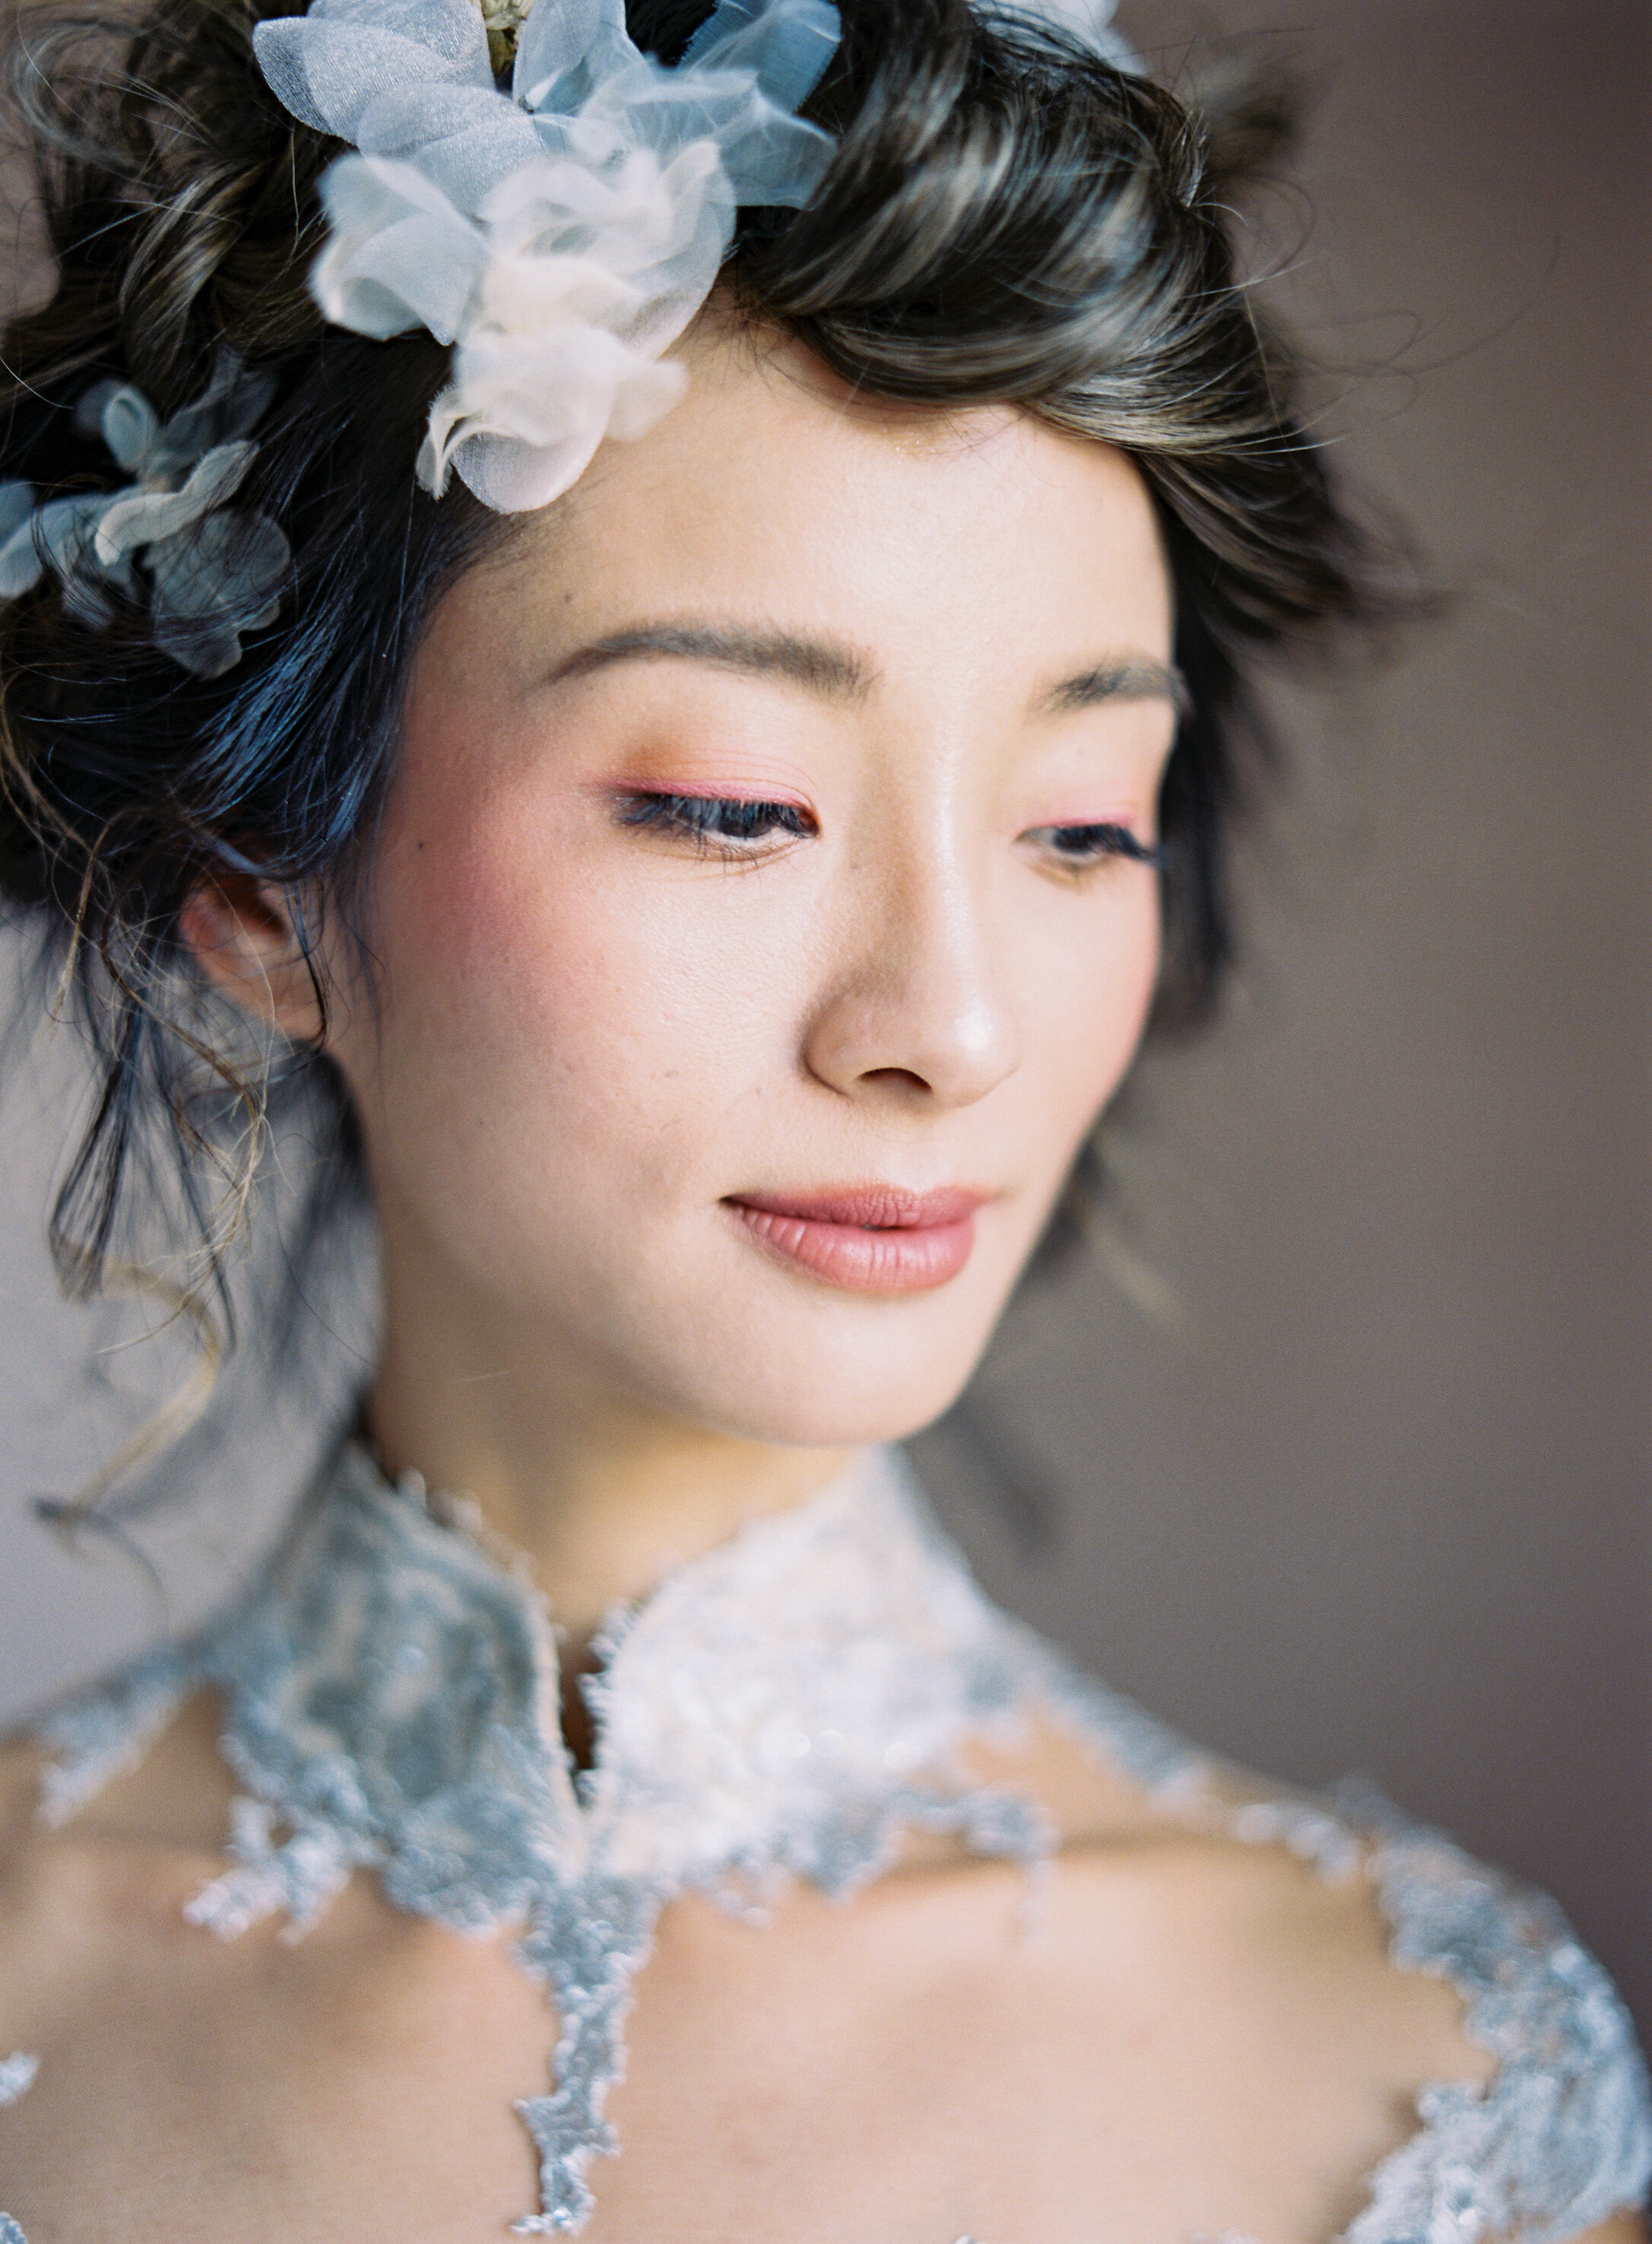 Chinese-Bride-Editorial-Selects-3-Jen_Huang-250802_002.jpg